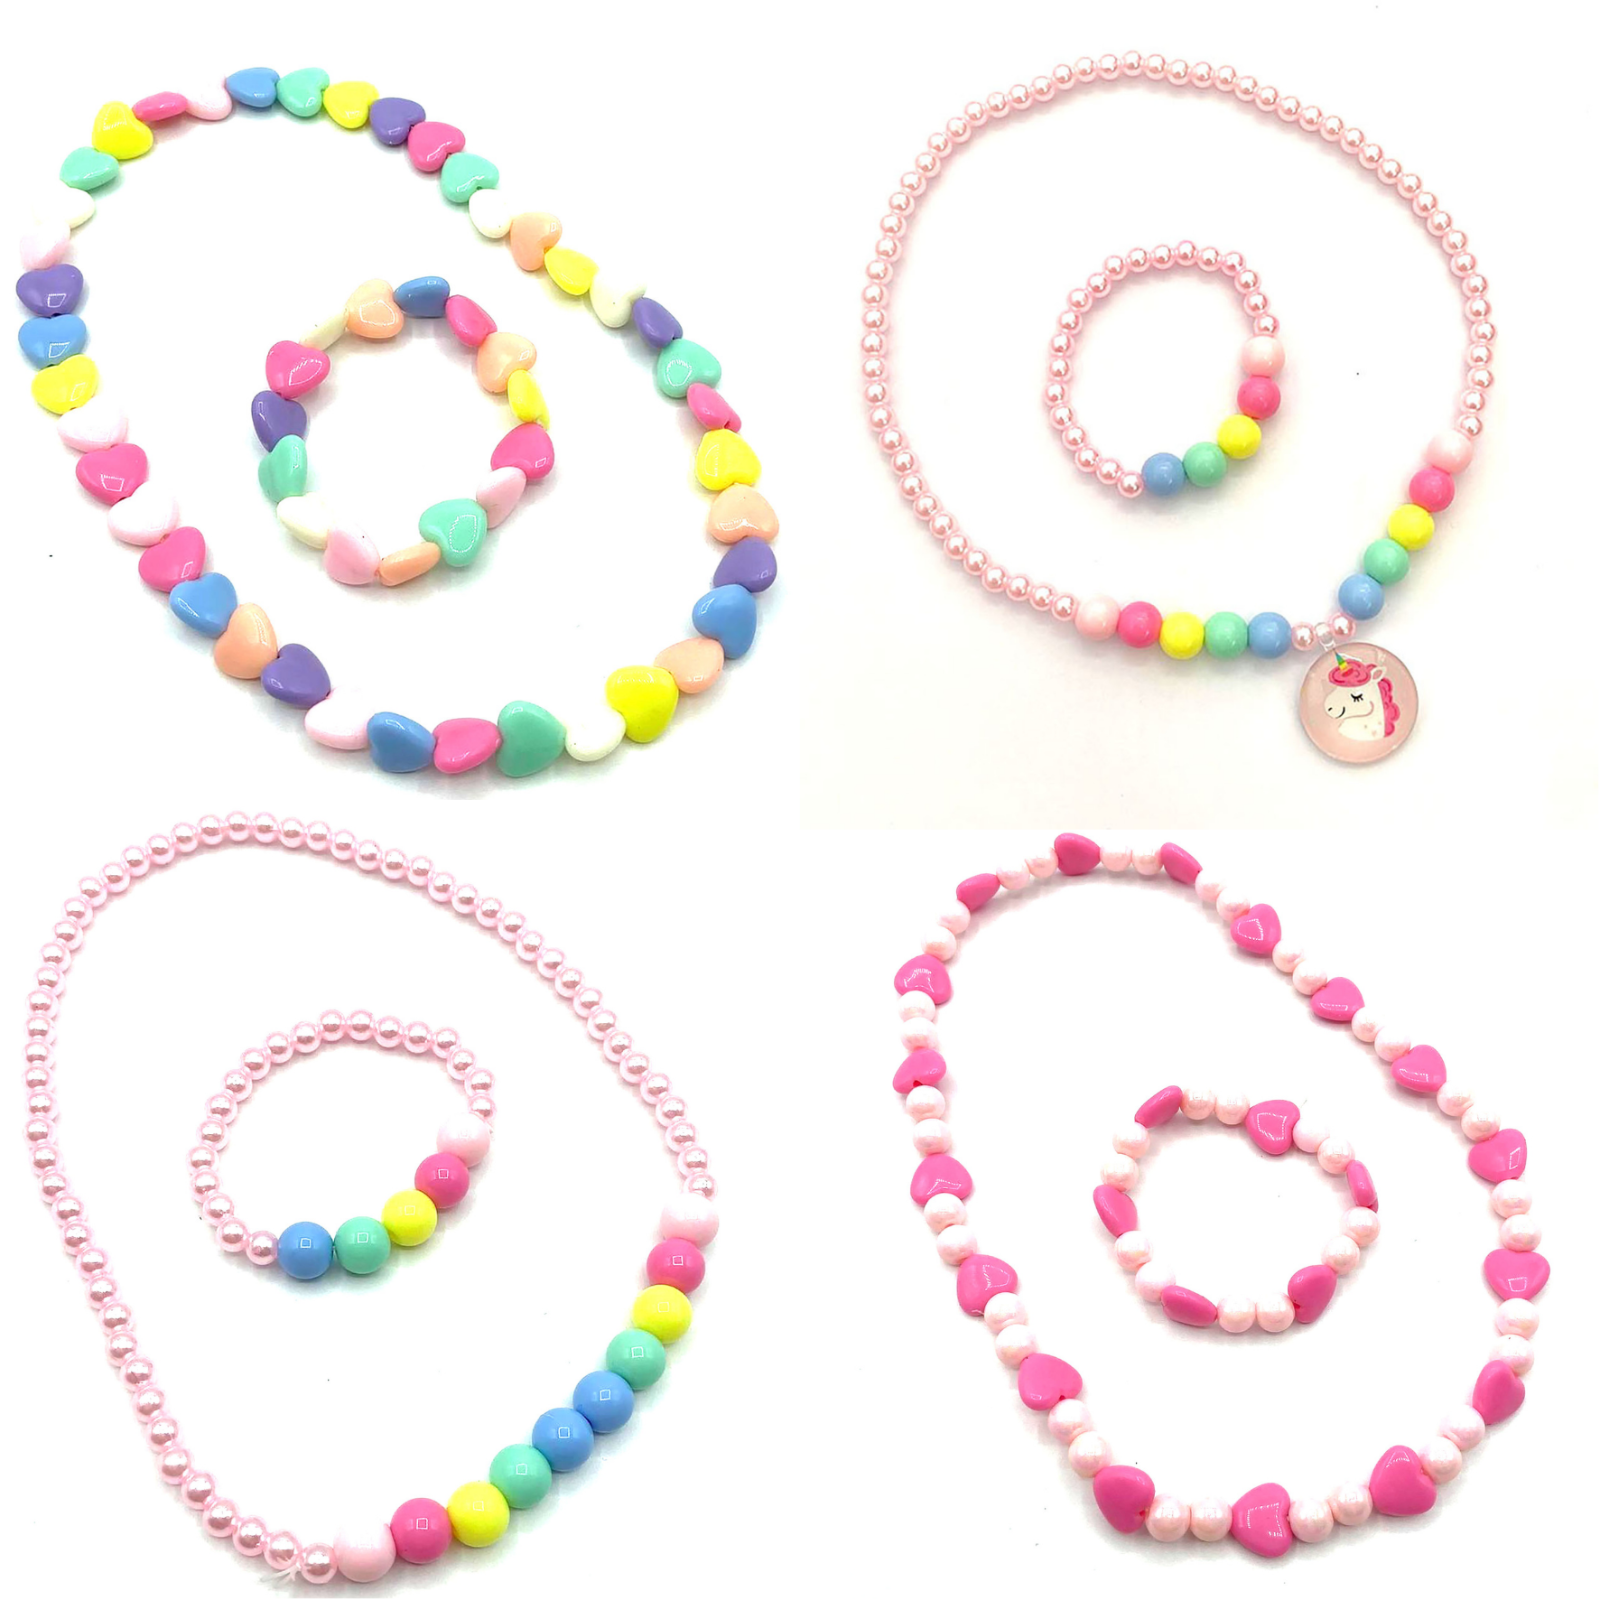 Jewellery - Girls Plastic Necklace and Bracelet Set Kids Jewellery Party Bag Fillers